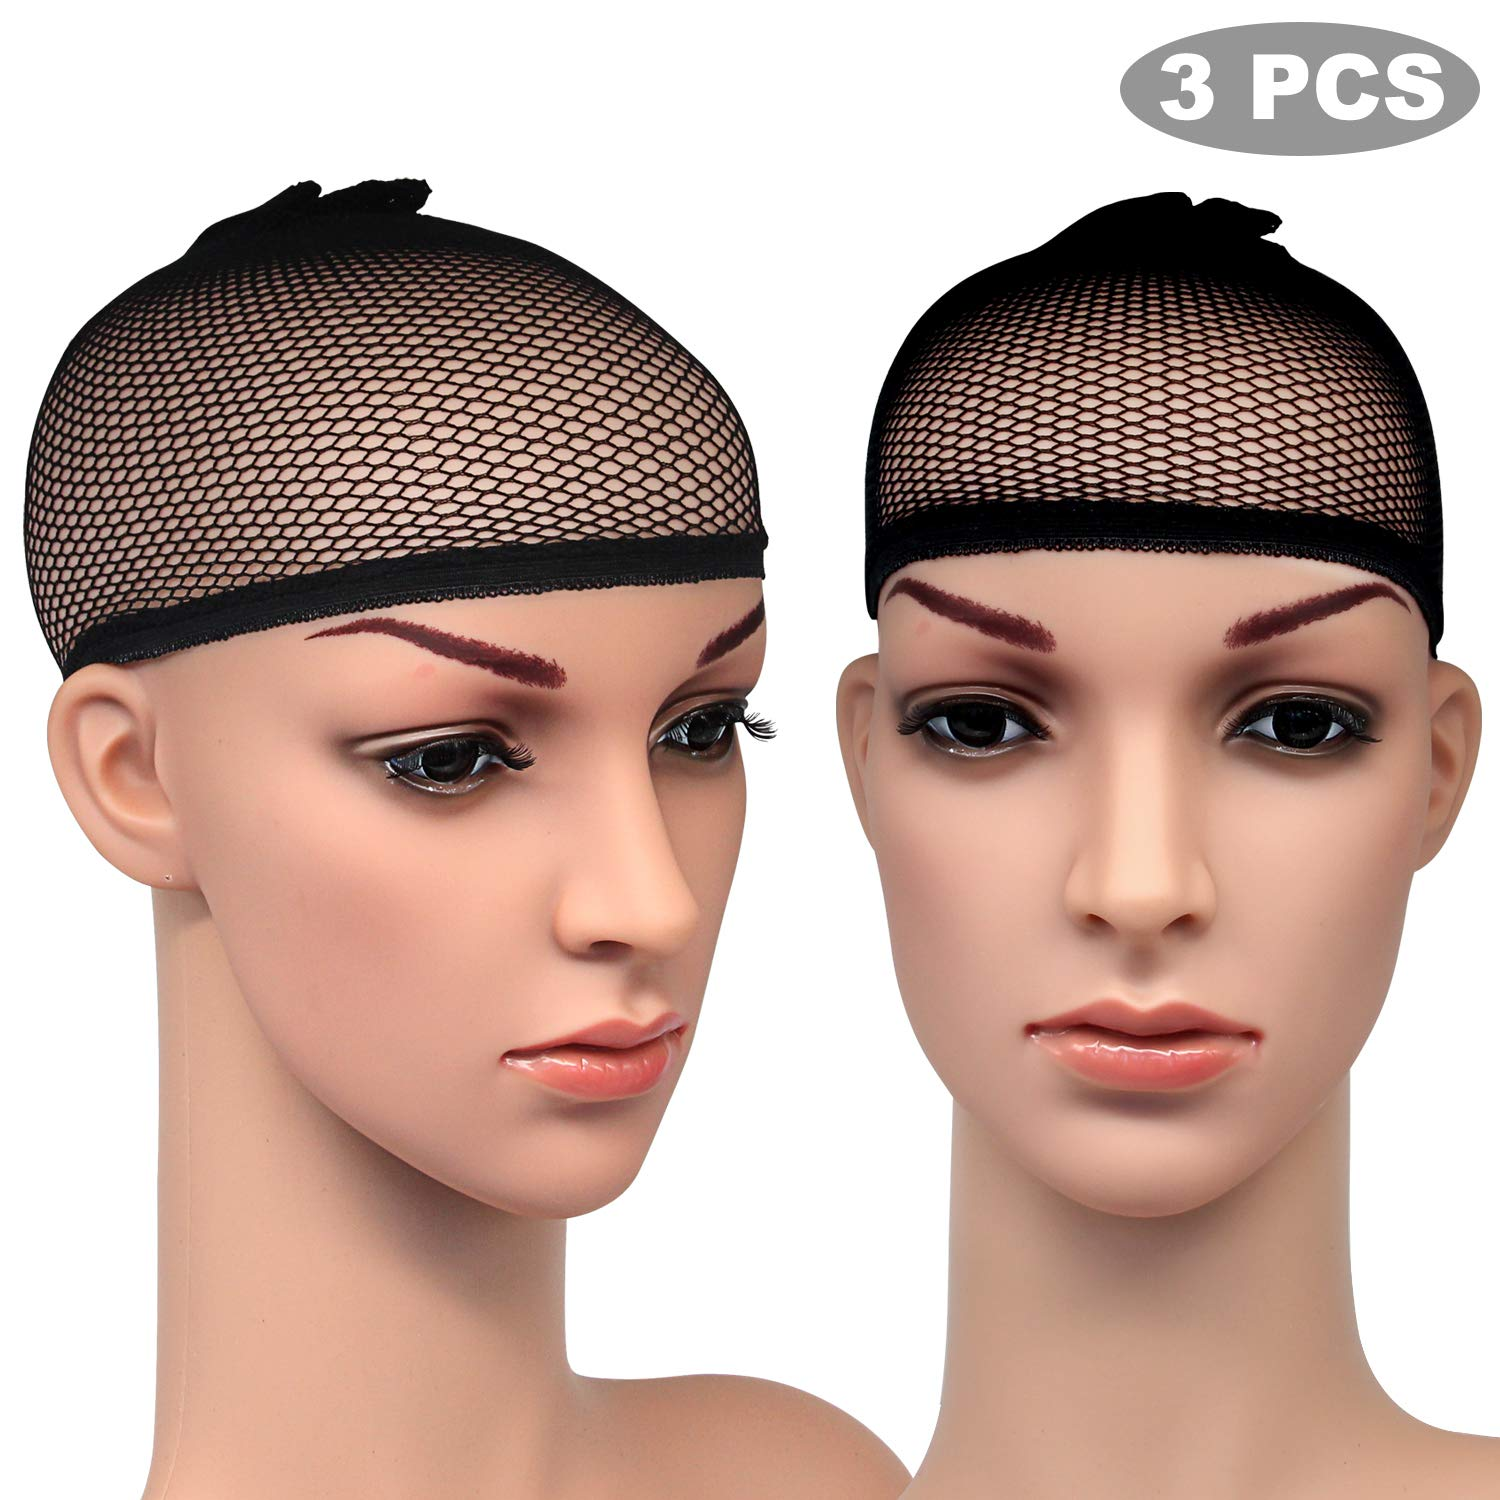 Hairnets Tools & Accessories Ladies Elastic Wig Caps Women Hair Wigs S Invisible Nylon Tocking Cap Weaving Mesh Net Elastic Fishnet 1pc Fashion New Hot Bright And Translucent In Appearance